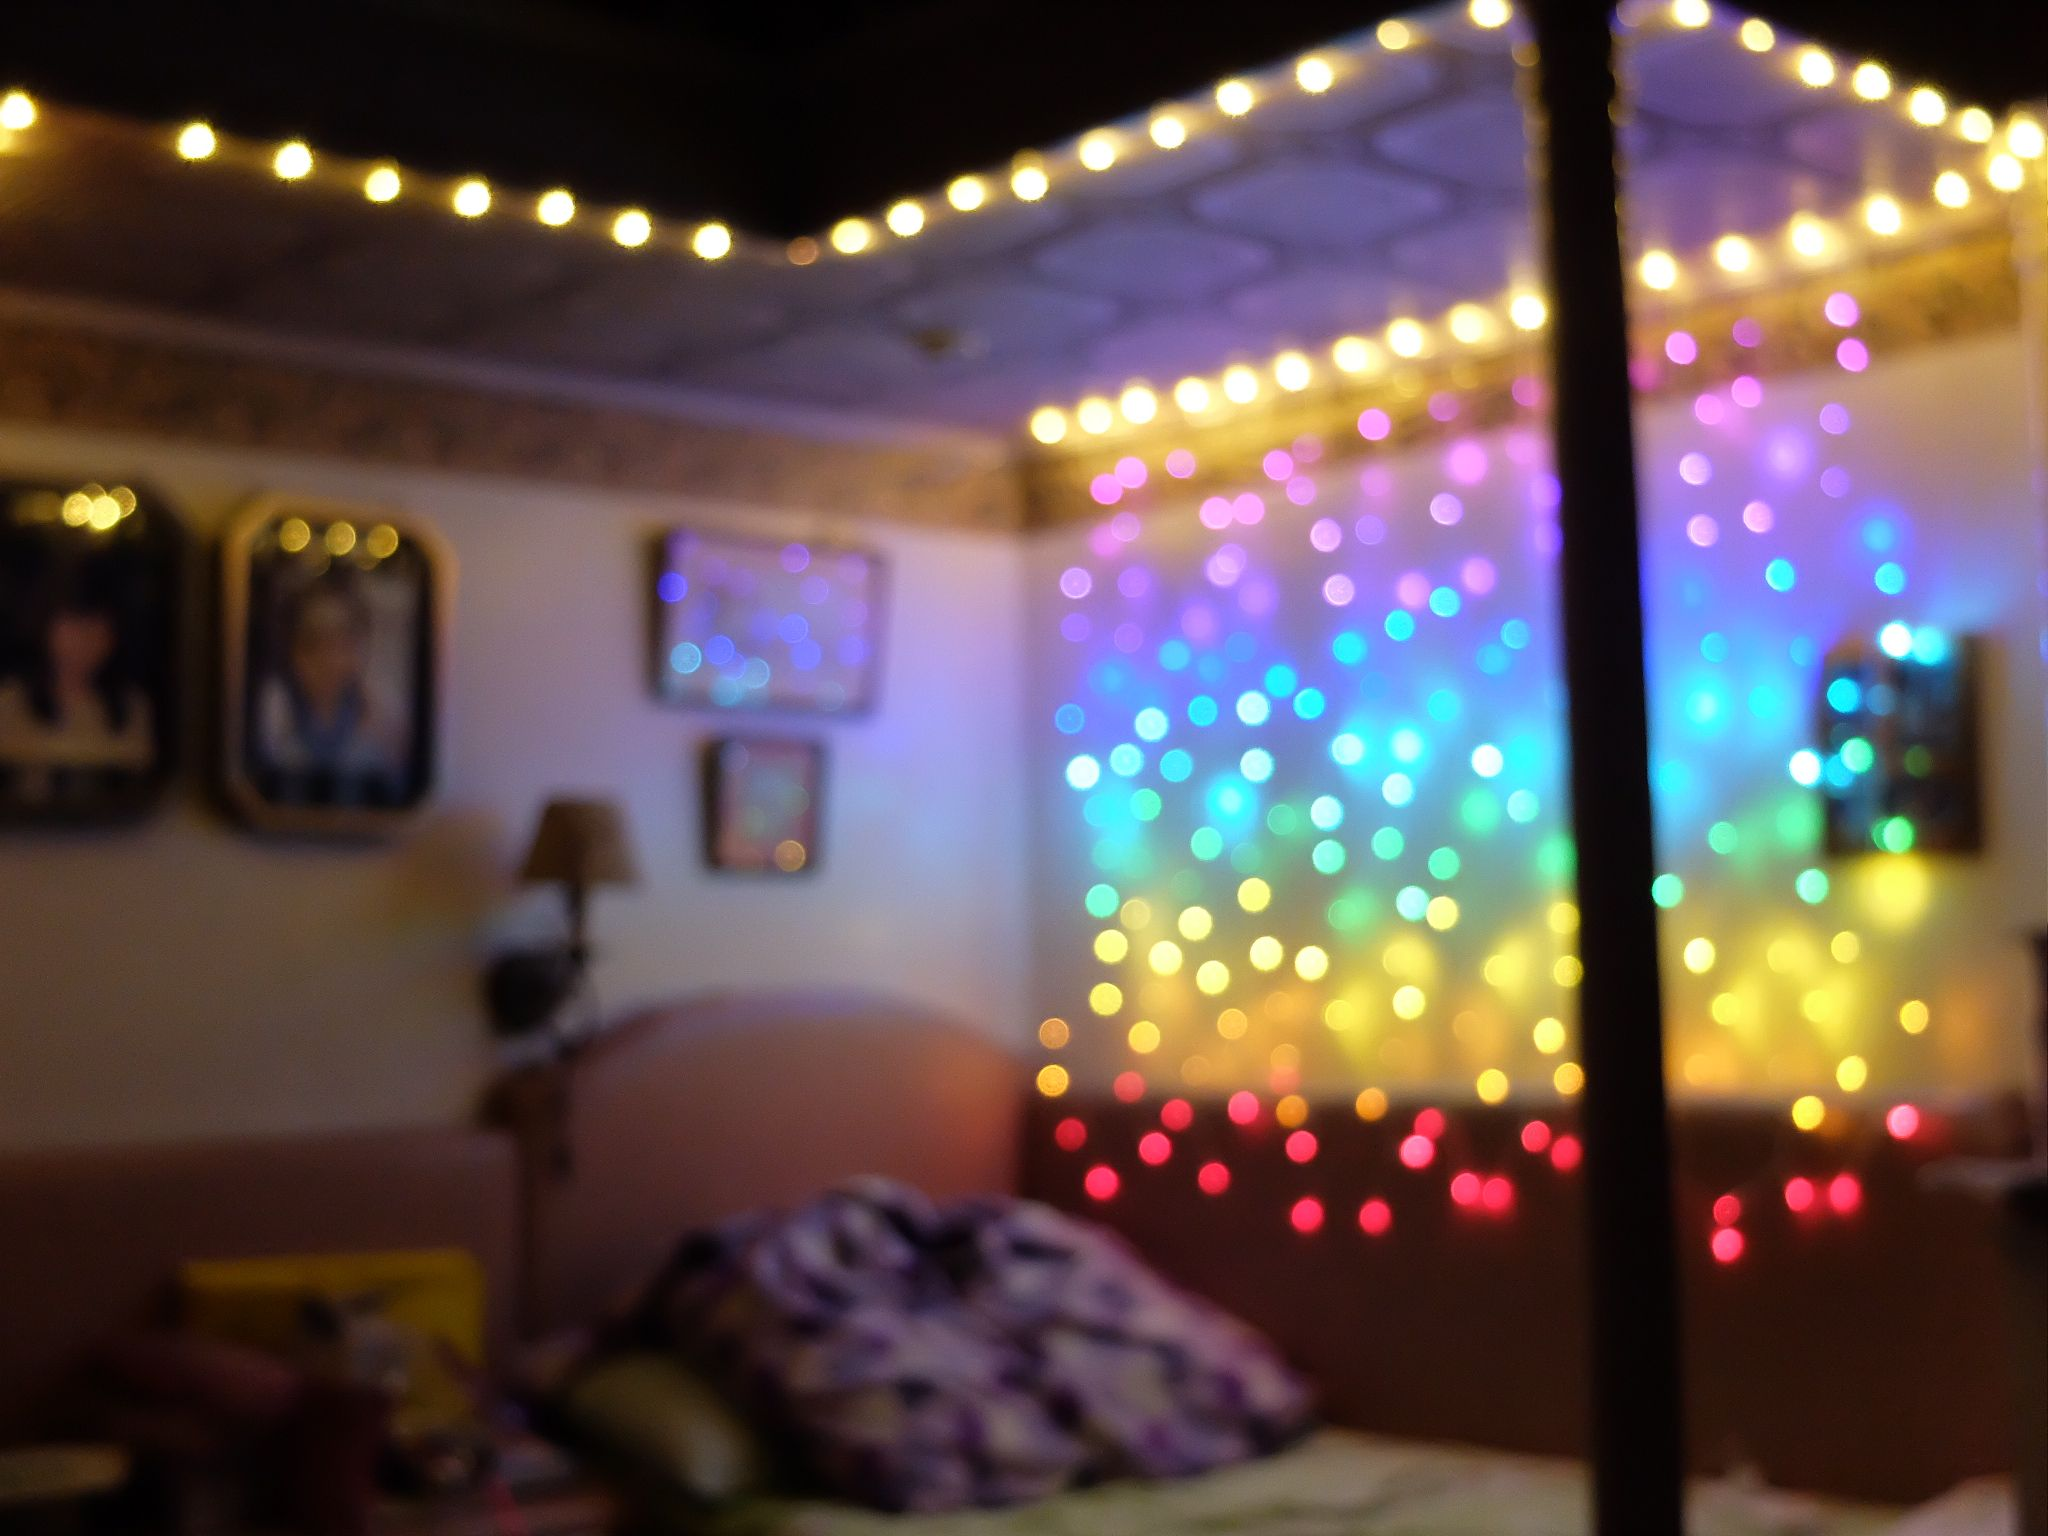 Purple christmas lights bedroom - Bedroom Goals Achieved I Decorated My Room Using Rainbow Curtain Lights And Fairy Lights From